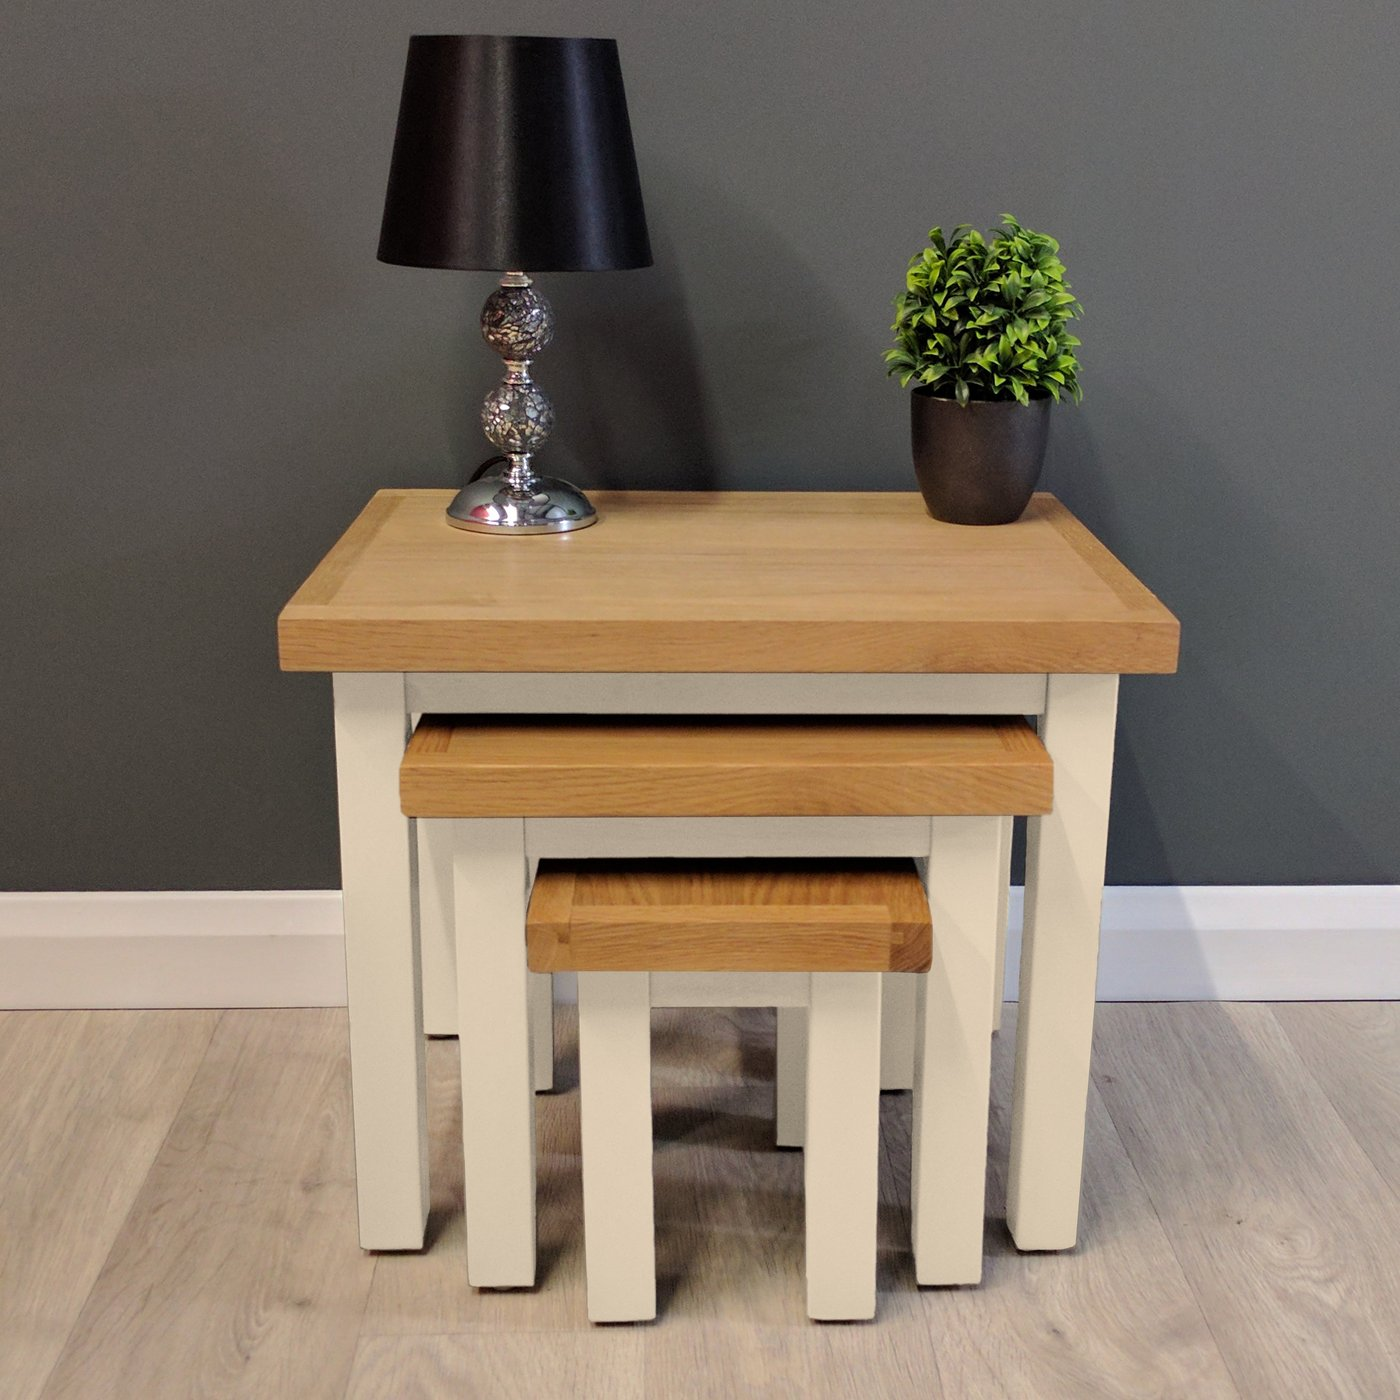 Guide to Nesting Tables